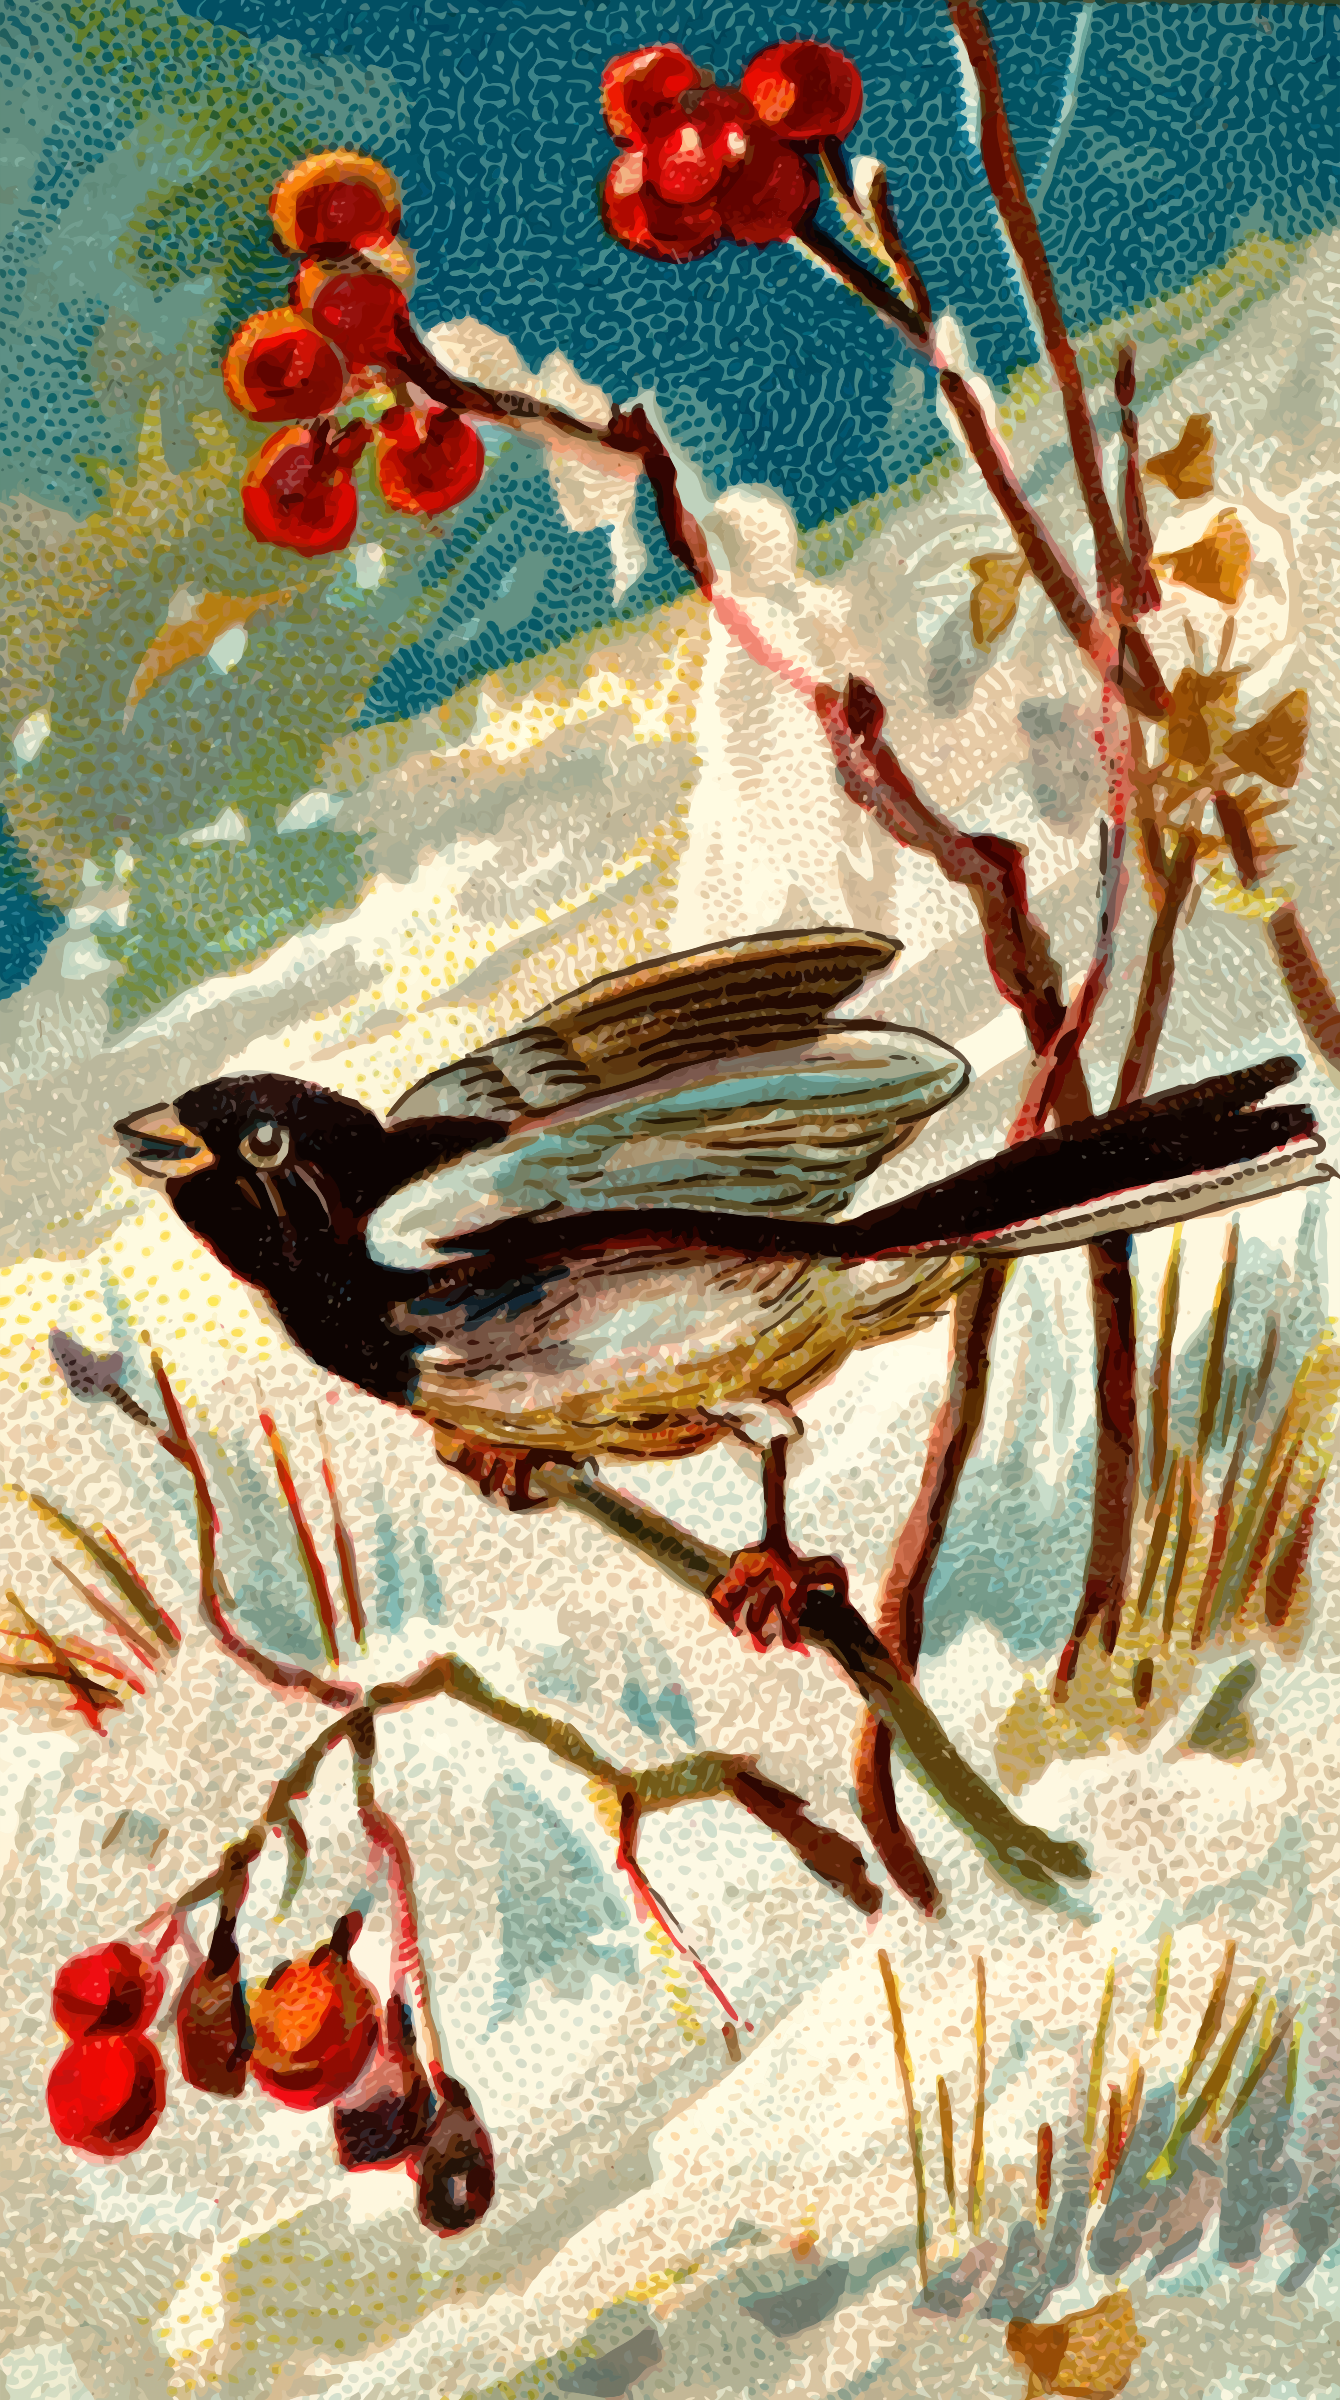 Cigarette card - Snow bird by Firkin